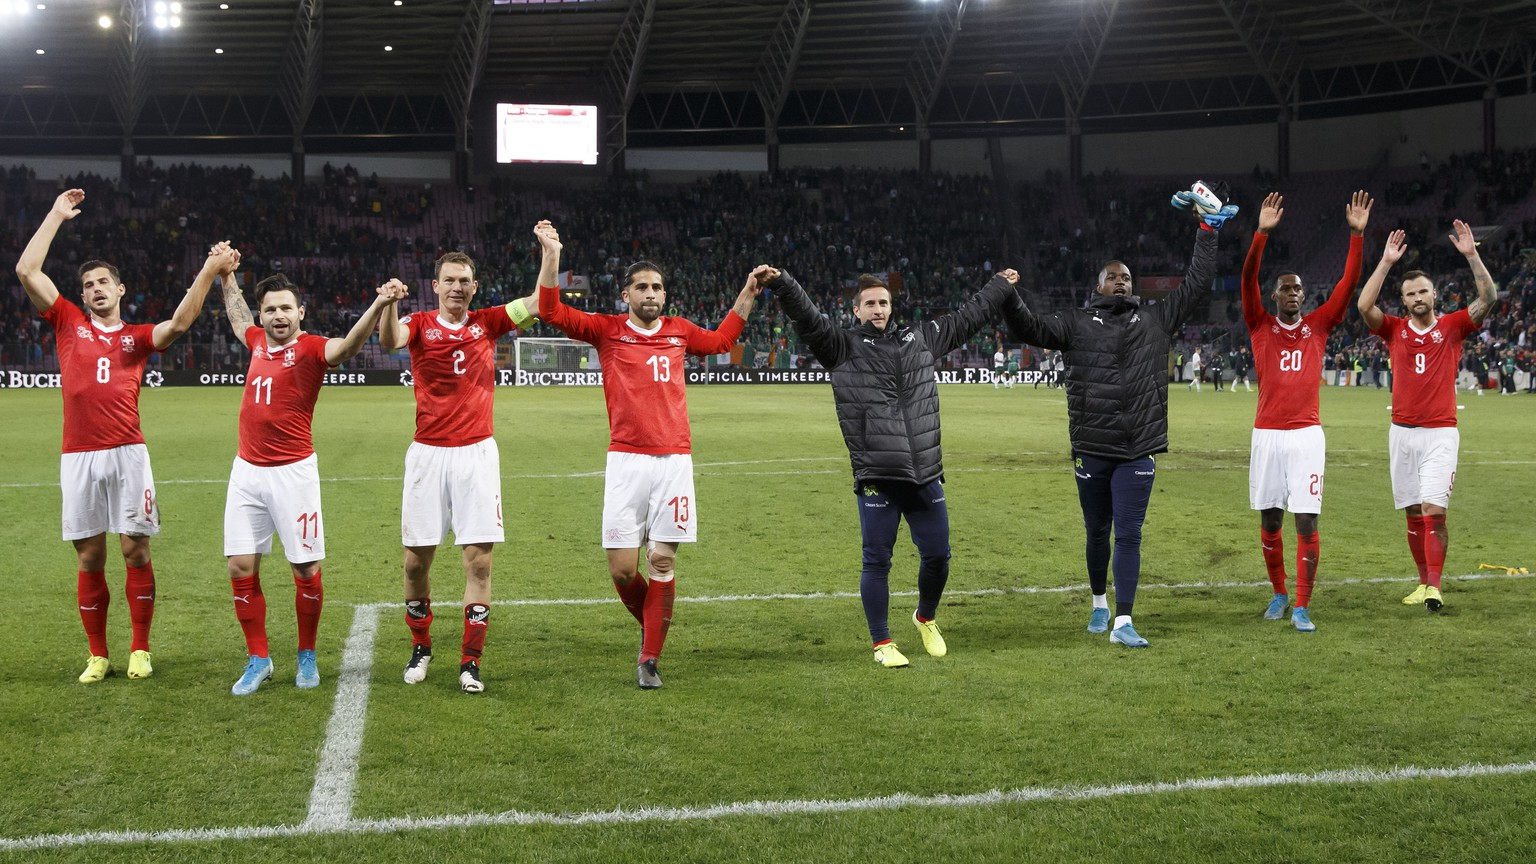 Switzerland's players celebrate after beating Republic of Ireland, during the UEFA Euro 2020 qualifying Group D soccer match between Switzerland and Republic of Ireland, at the Stade de Geneve, in Geneva, Switzerland, Tuesday, October 15, 2019. (KEYSTONE/Salvatore Di Nolfi)